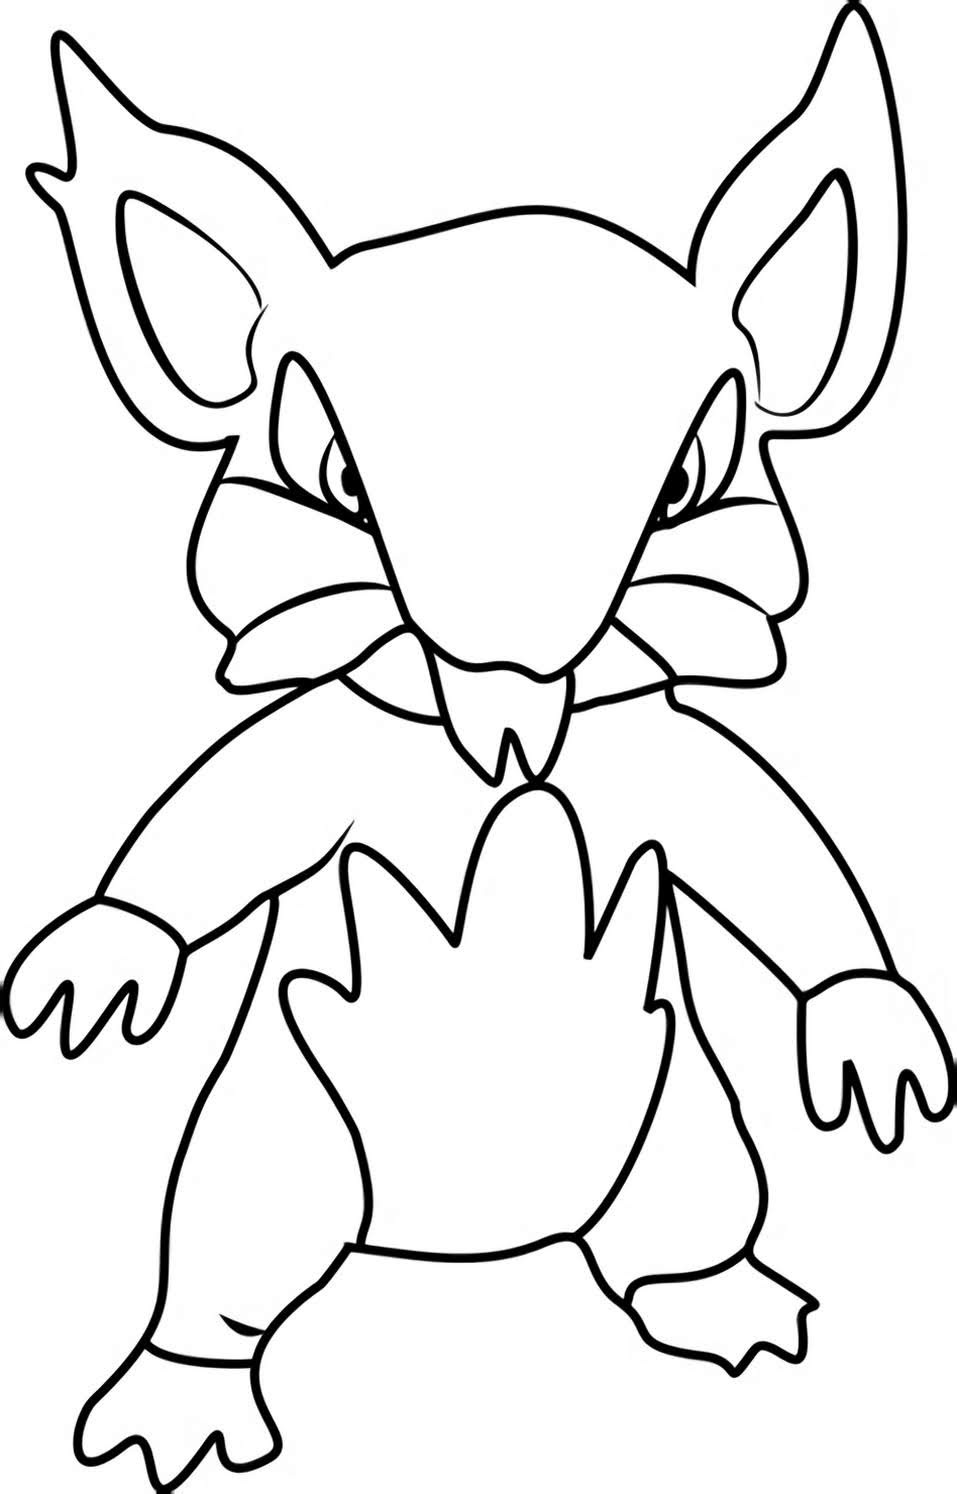 Rattata Pokemon Coloring Pages To Print Free Pokemon Coloring Pages